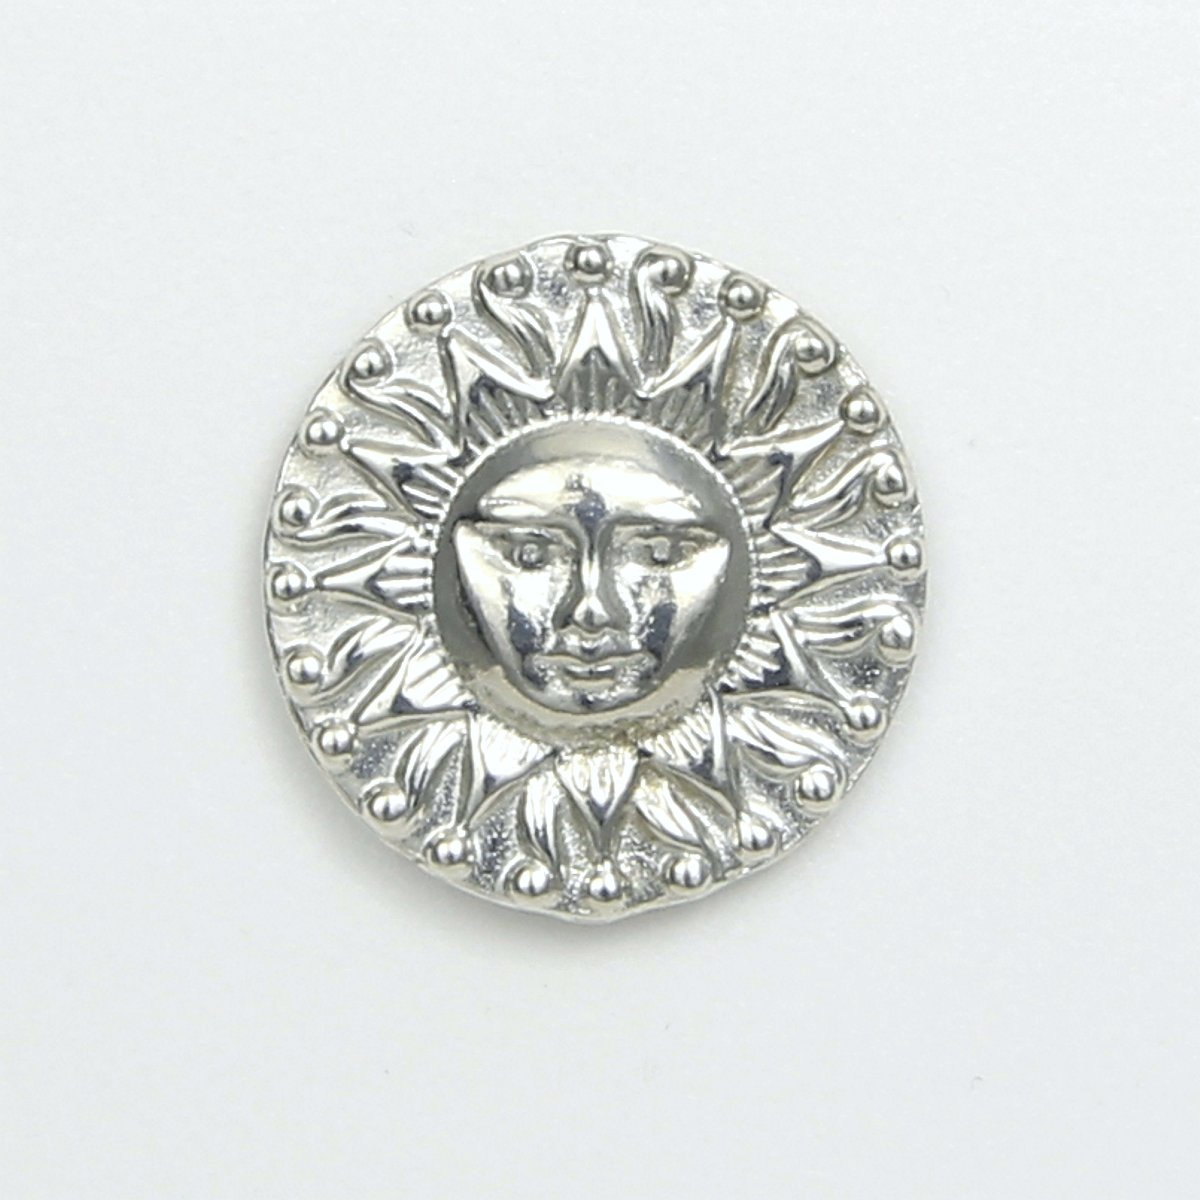 Radiant Sun Scarf Pin with Magnetic Back Closure - No holes in Clothes - Handcrafted Pewter Made in USA